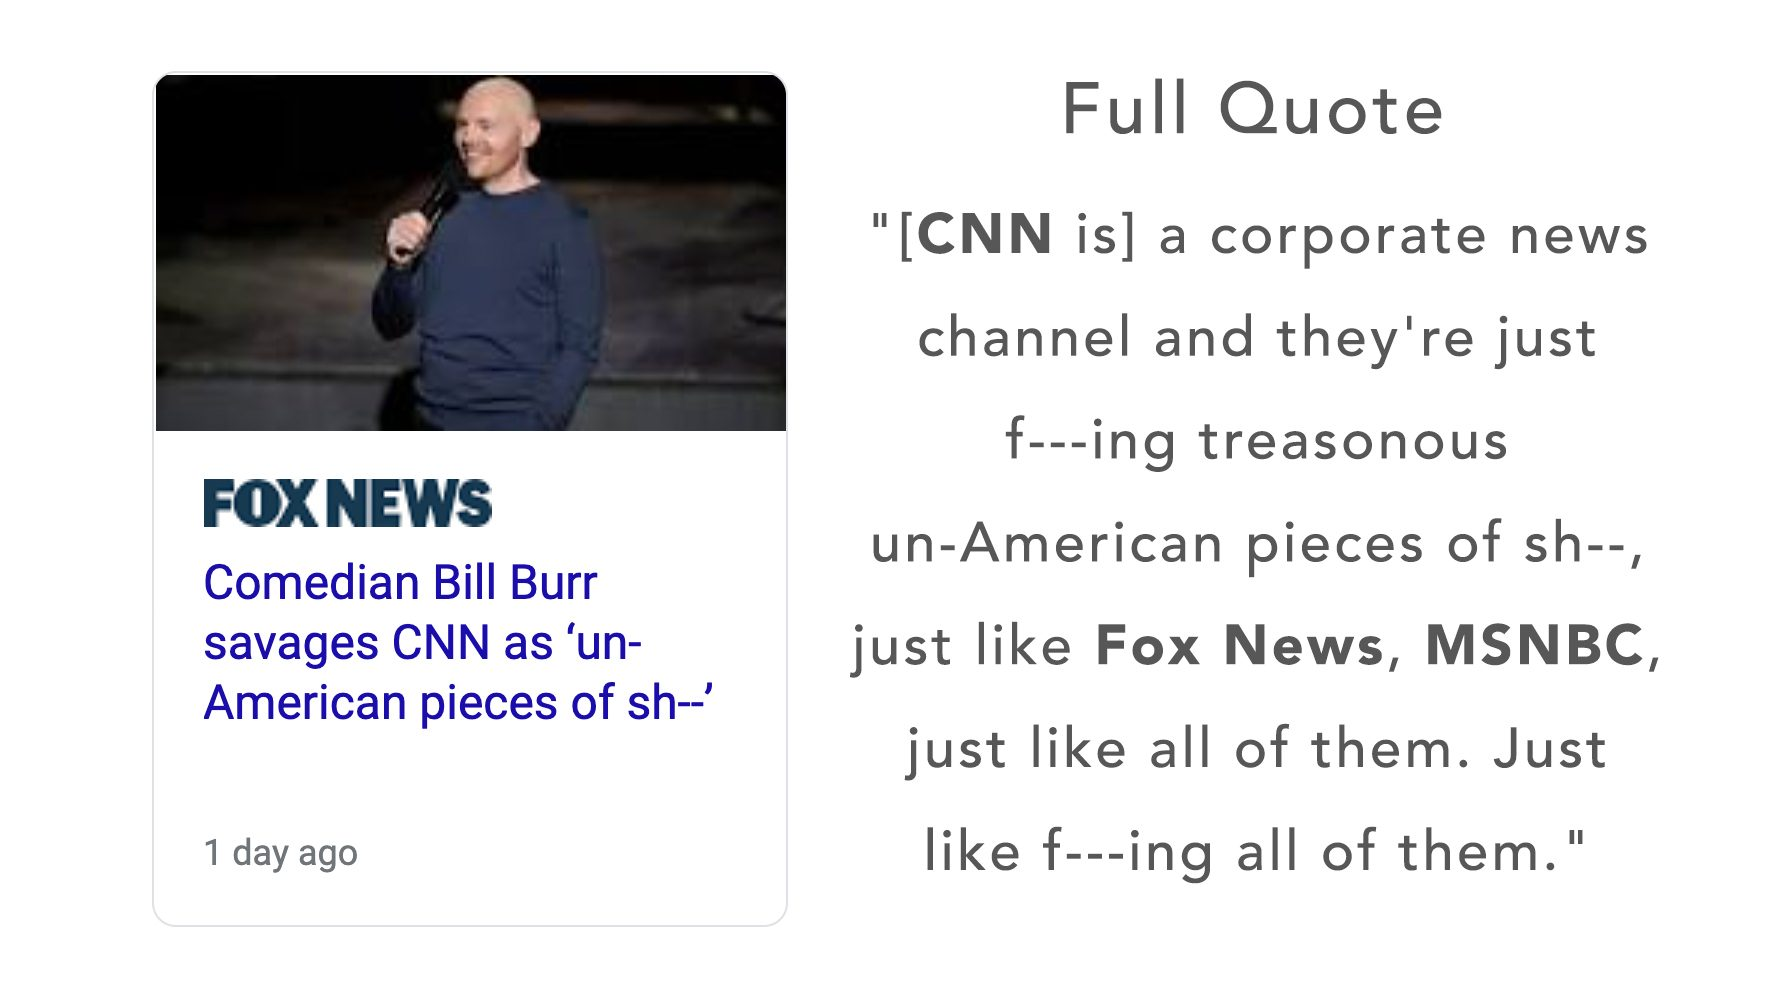 Bill Burr had a CNN rant that also mentioned Fox News and MSNBC which Fox News left out of its reporting.